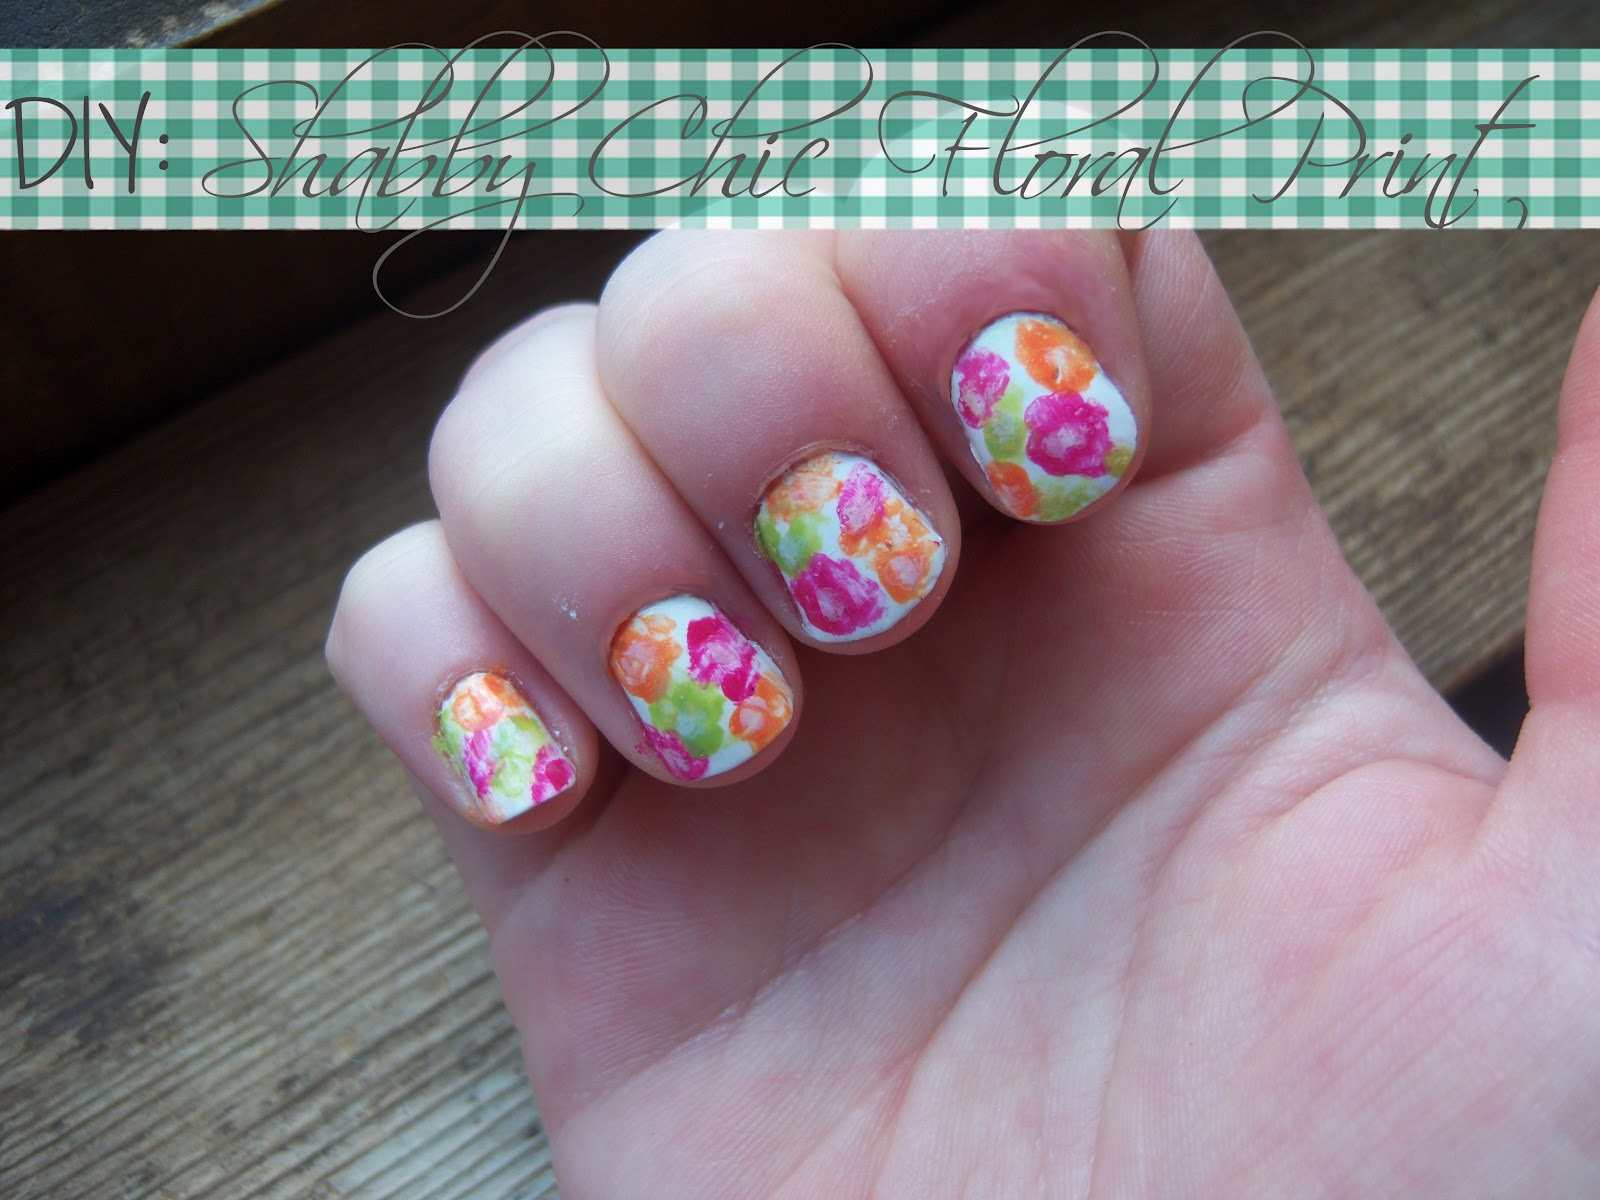 Mind Body Beauty: NOTW: Shabby Chic Floral Print